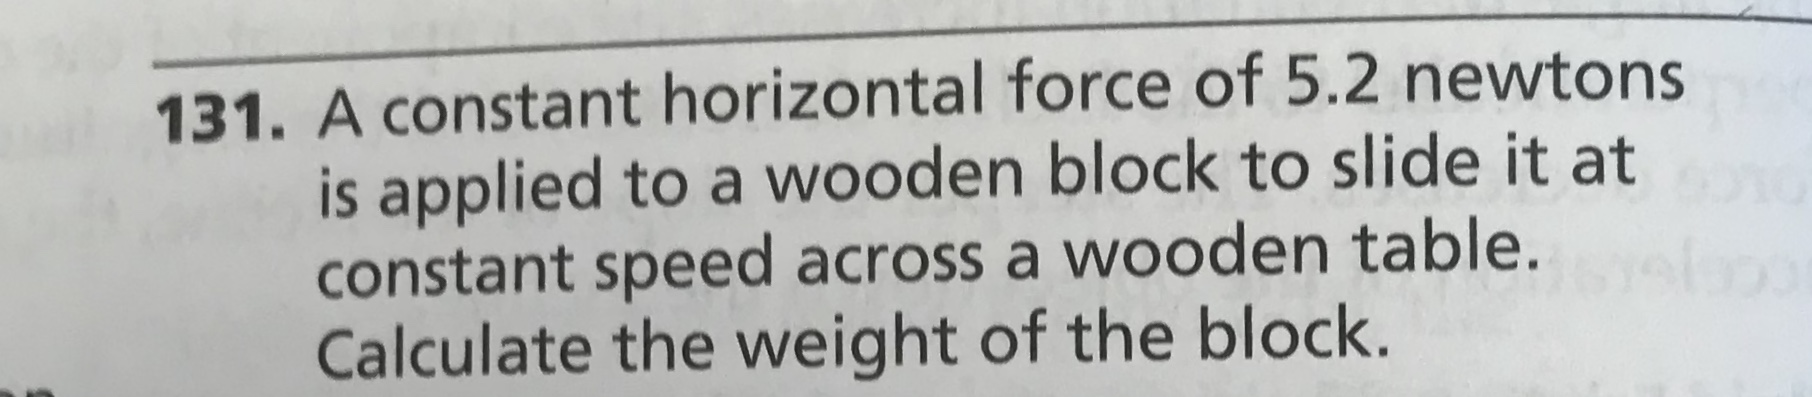 131. A constant horizontal force of 5.2 newtons is applied to a wooden block to slide it at constant speed across a wooden table. Calculate the weight of the block.